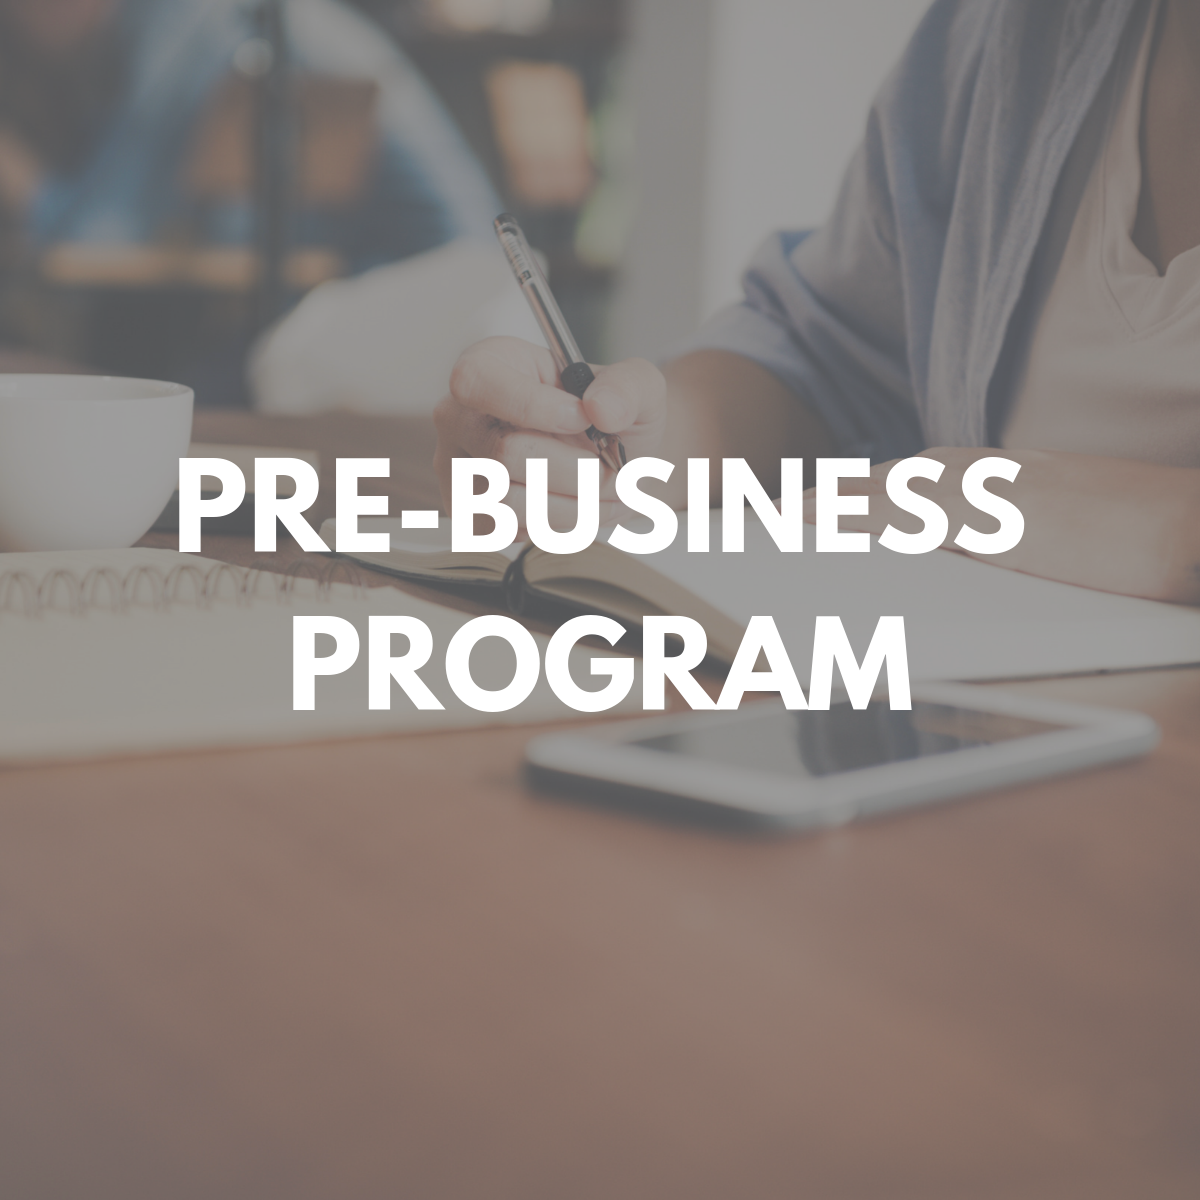 Pre-Business Program